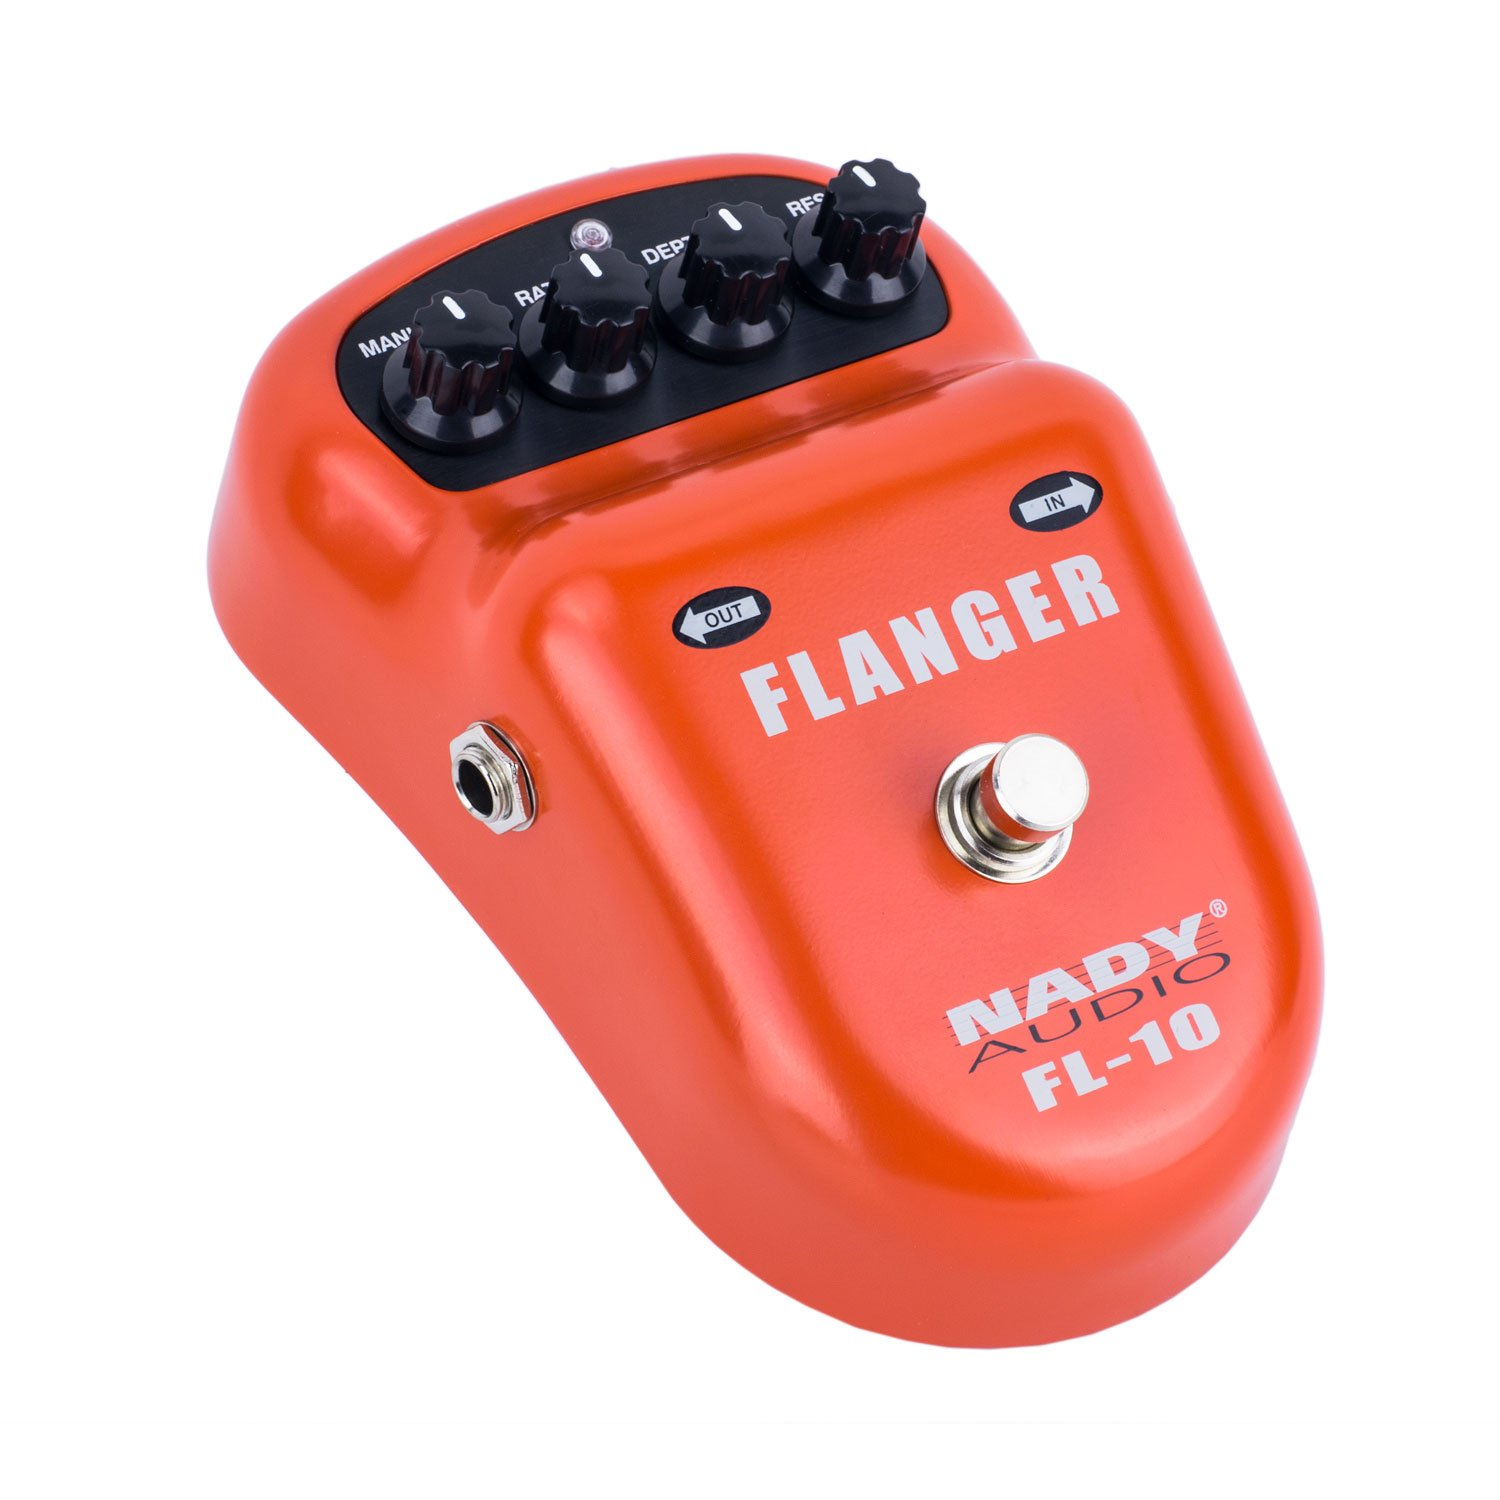 Nady FL-10 Flanger Pedal – Classic, warm & smooth guitar effects - Manual, Rate, Depth, and Resonance controls by Nady Systems